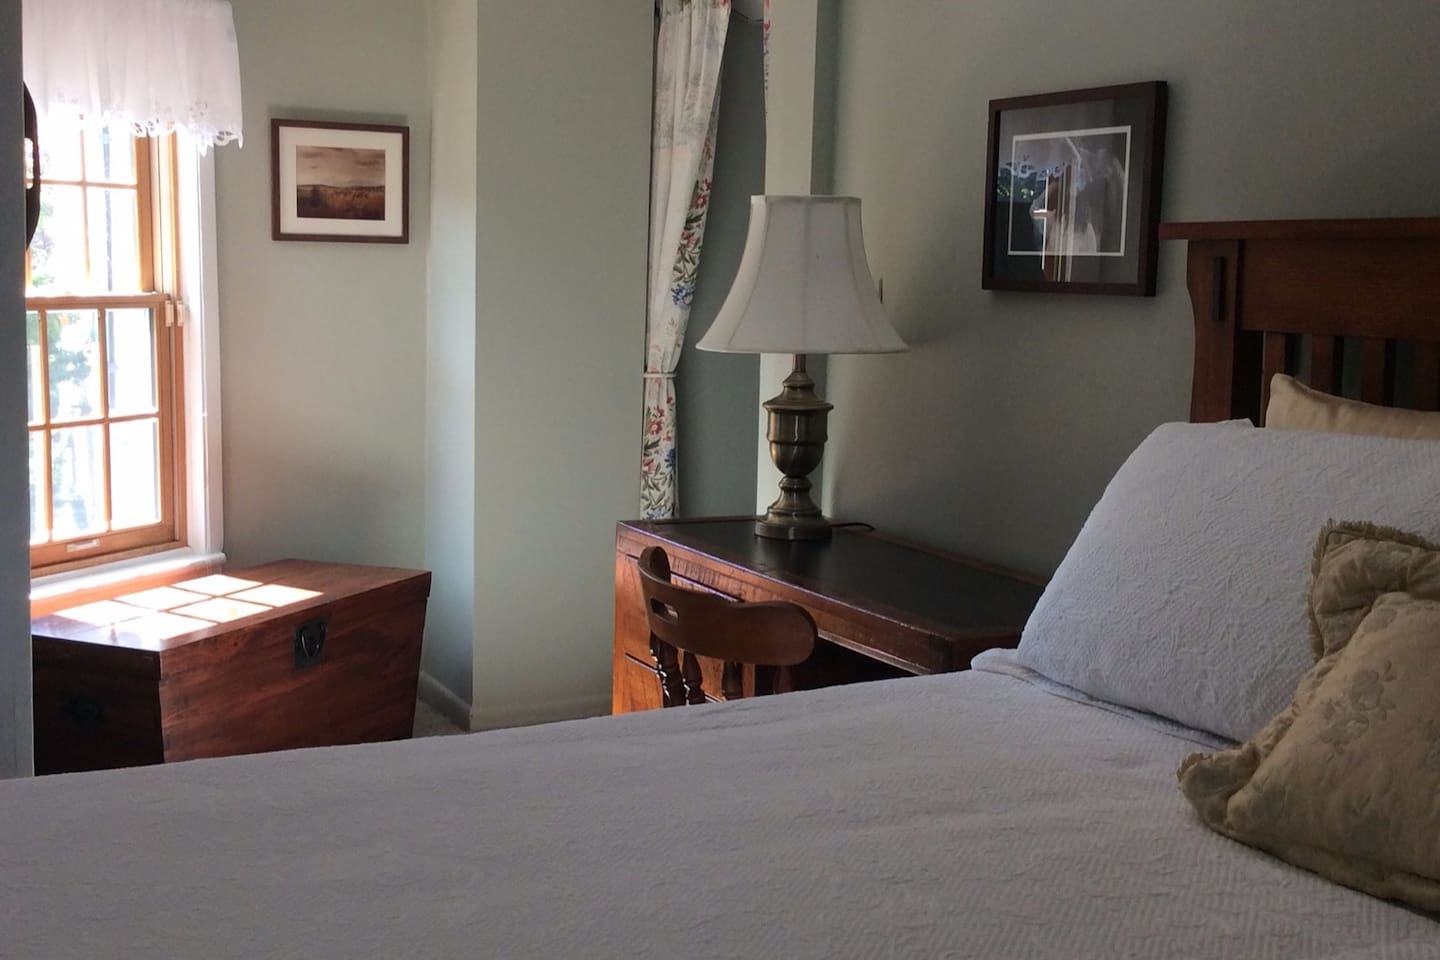 You will feel relaxed, pampered, and a bit as if you are stepping back in time upon entering this secluded boudoir.